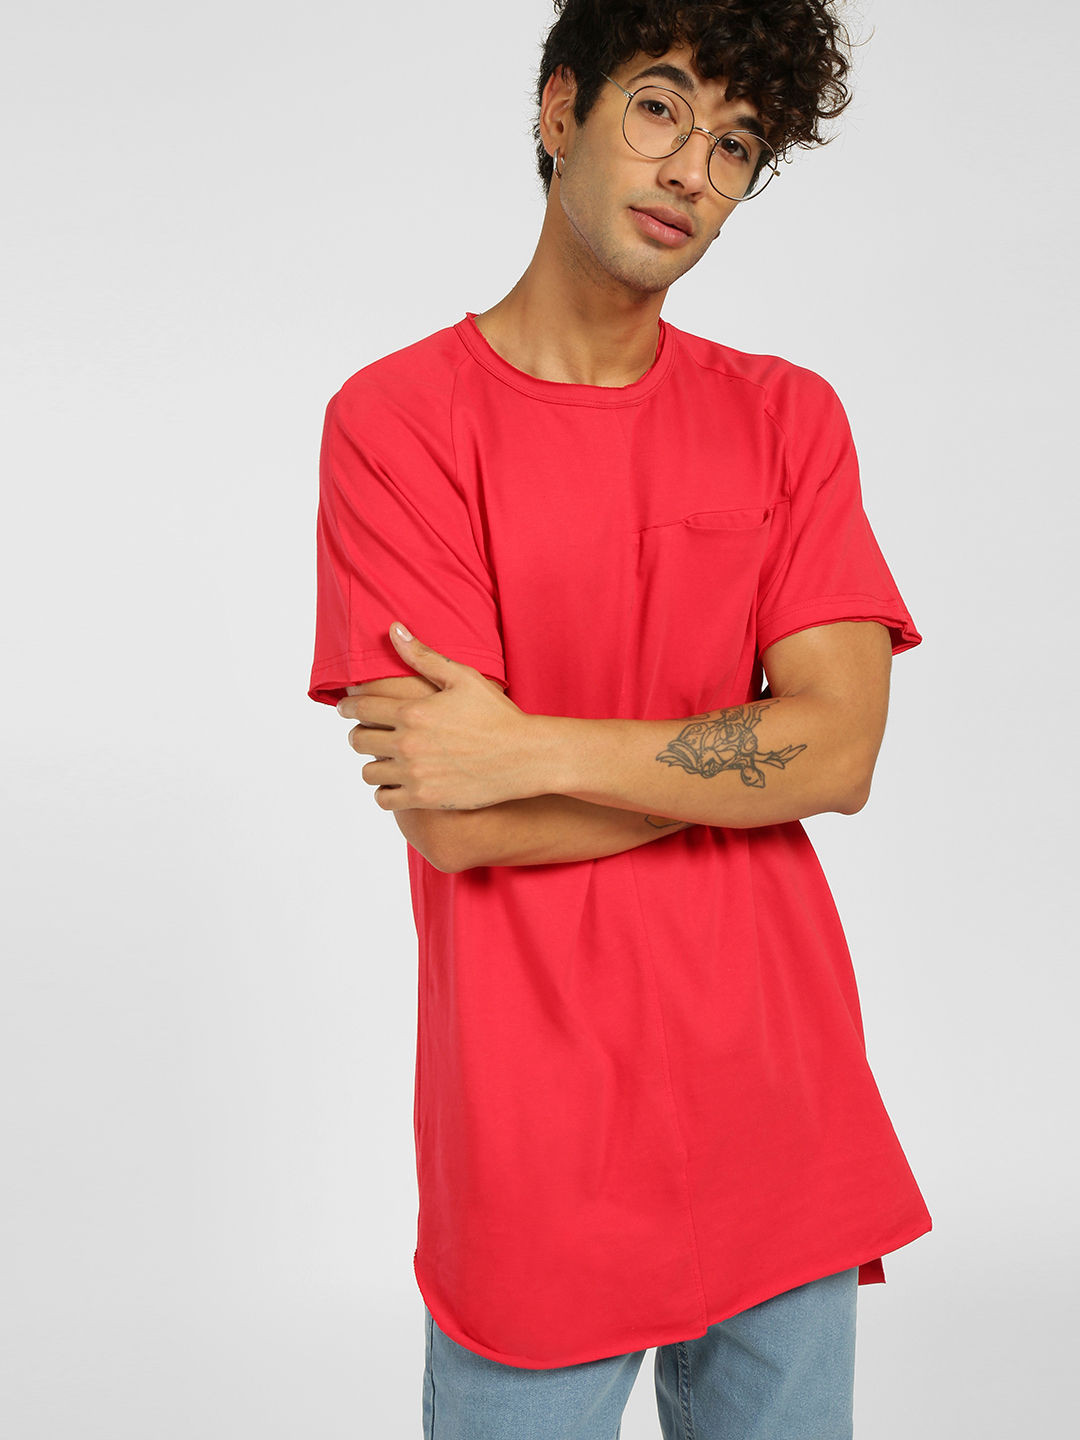 SKULT By Shahid Kapoor Red Raw Hem T-Shirt 1